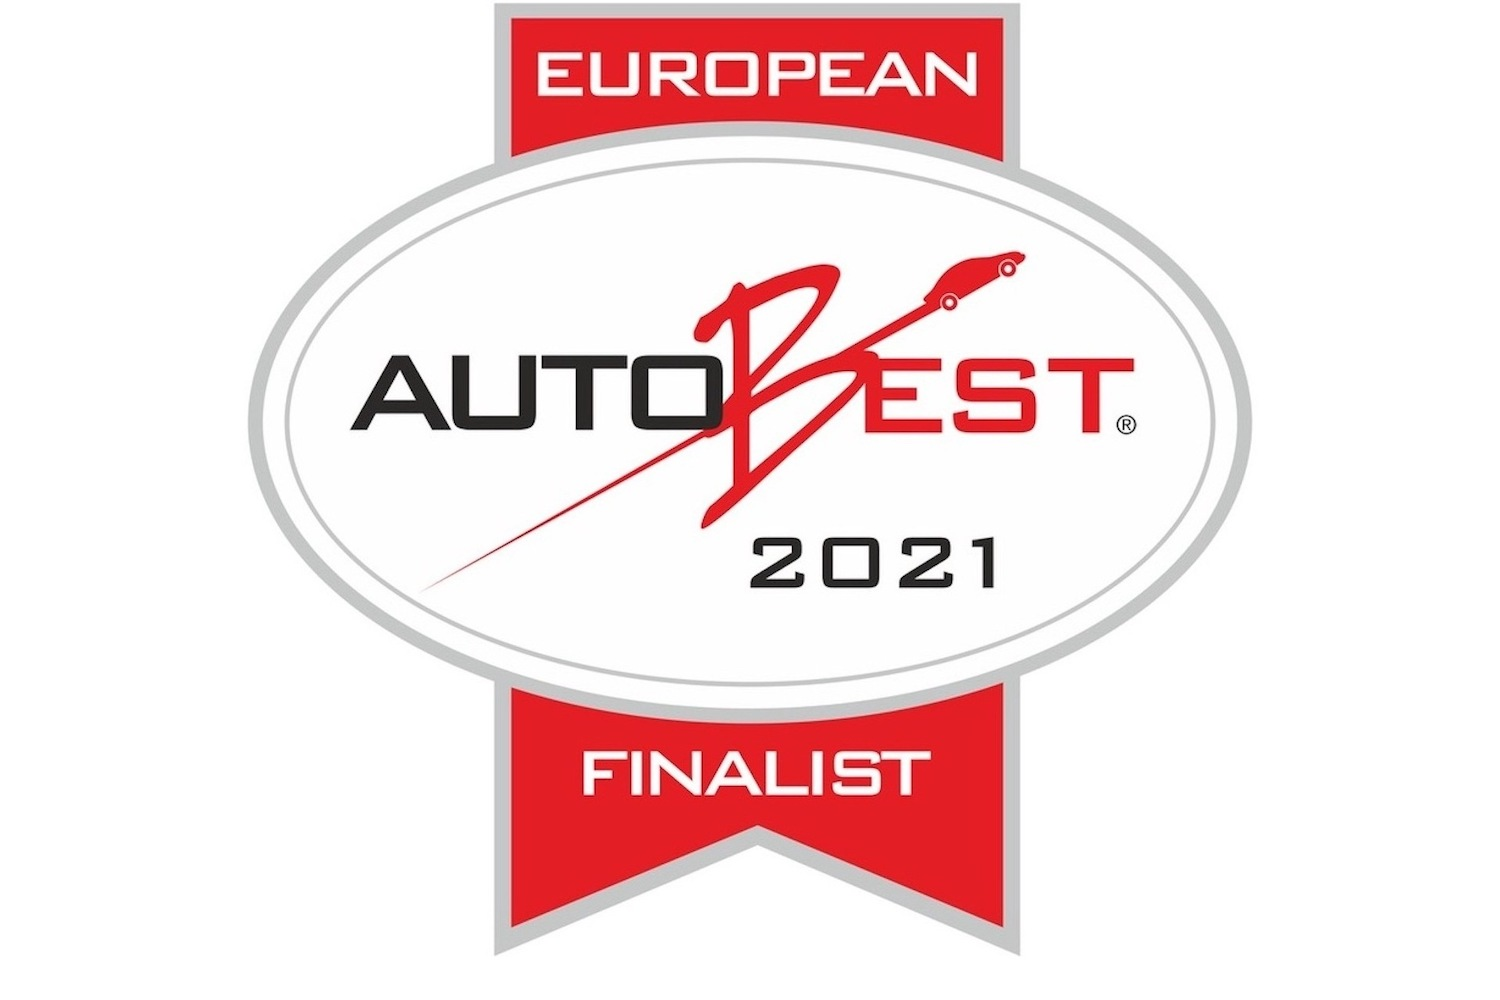 Car News | Autobest names its finalists for 2021 award | CompleteCar.ie